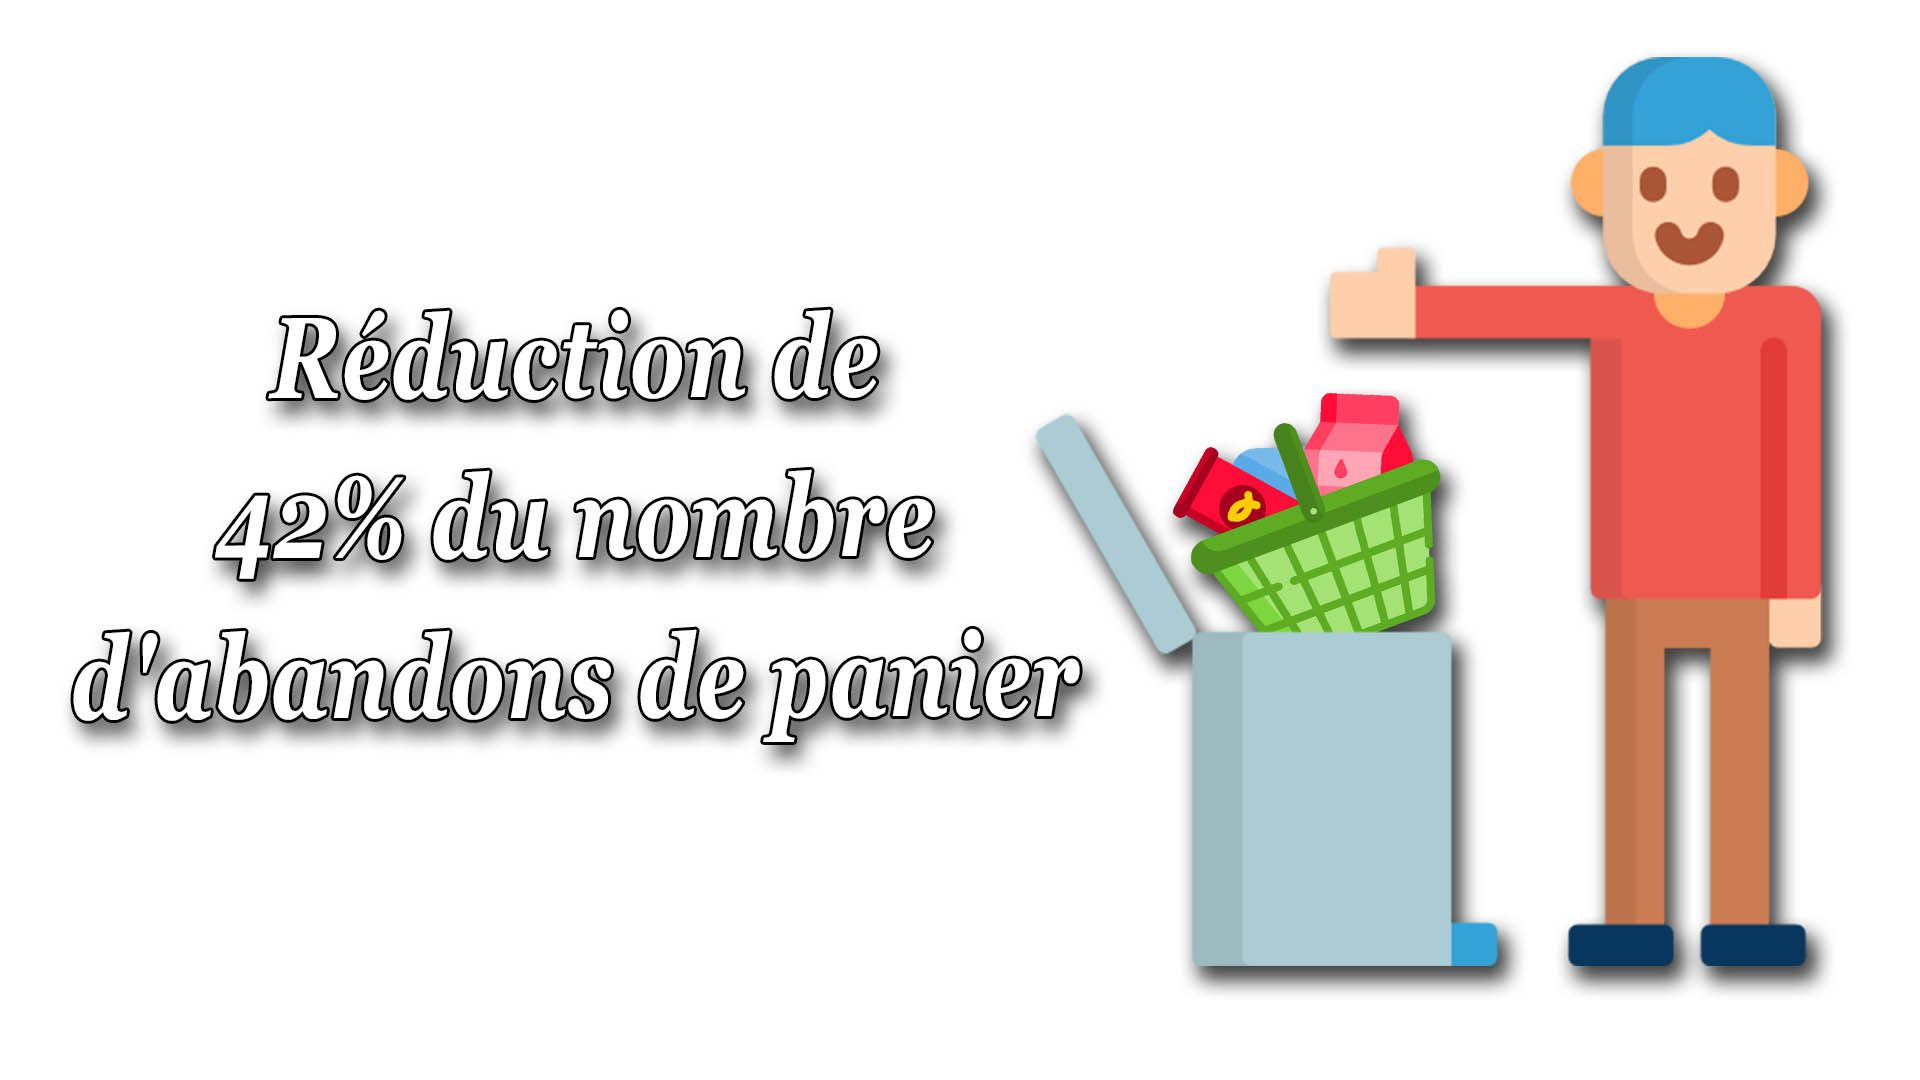 Réduction de 42% du nombre d'abandons de panier, sans rabais #GrowthHacking #WEbMarketing #FormationGrowthHacking #CentreDeFormationFrance #TunnelAARRR #AARRR #SocialMedia #CommunityManagement #SEO